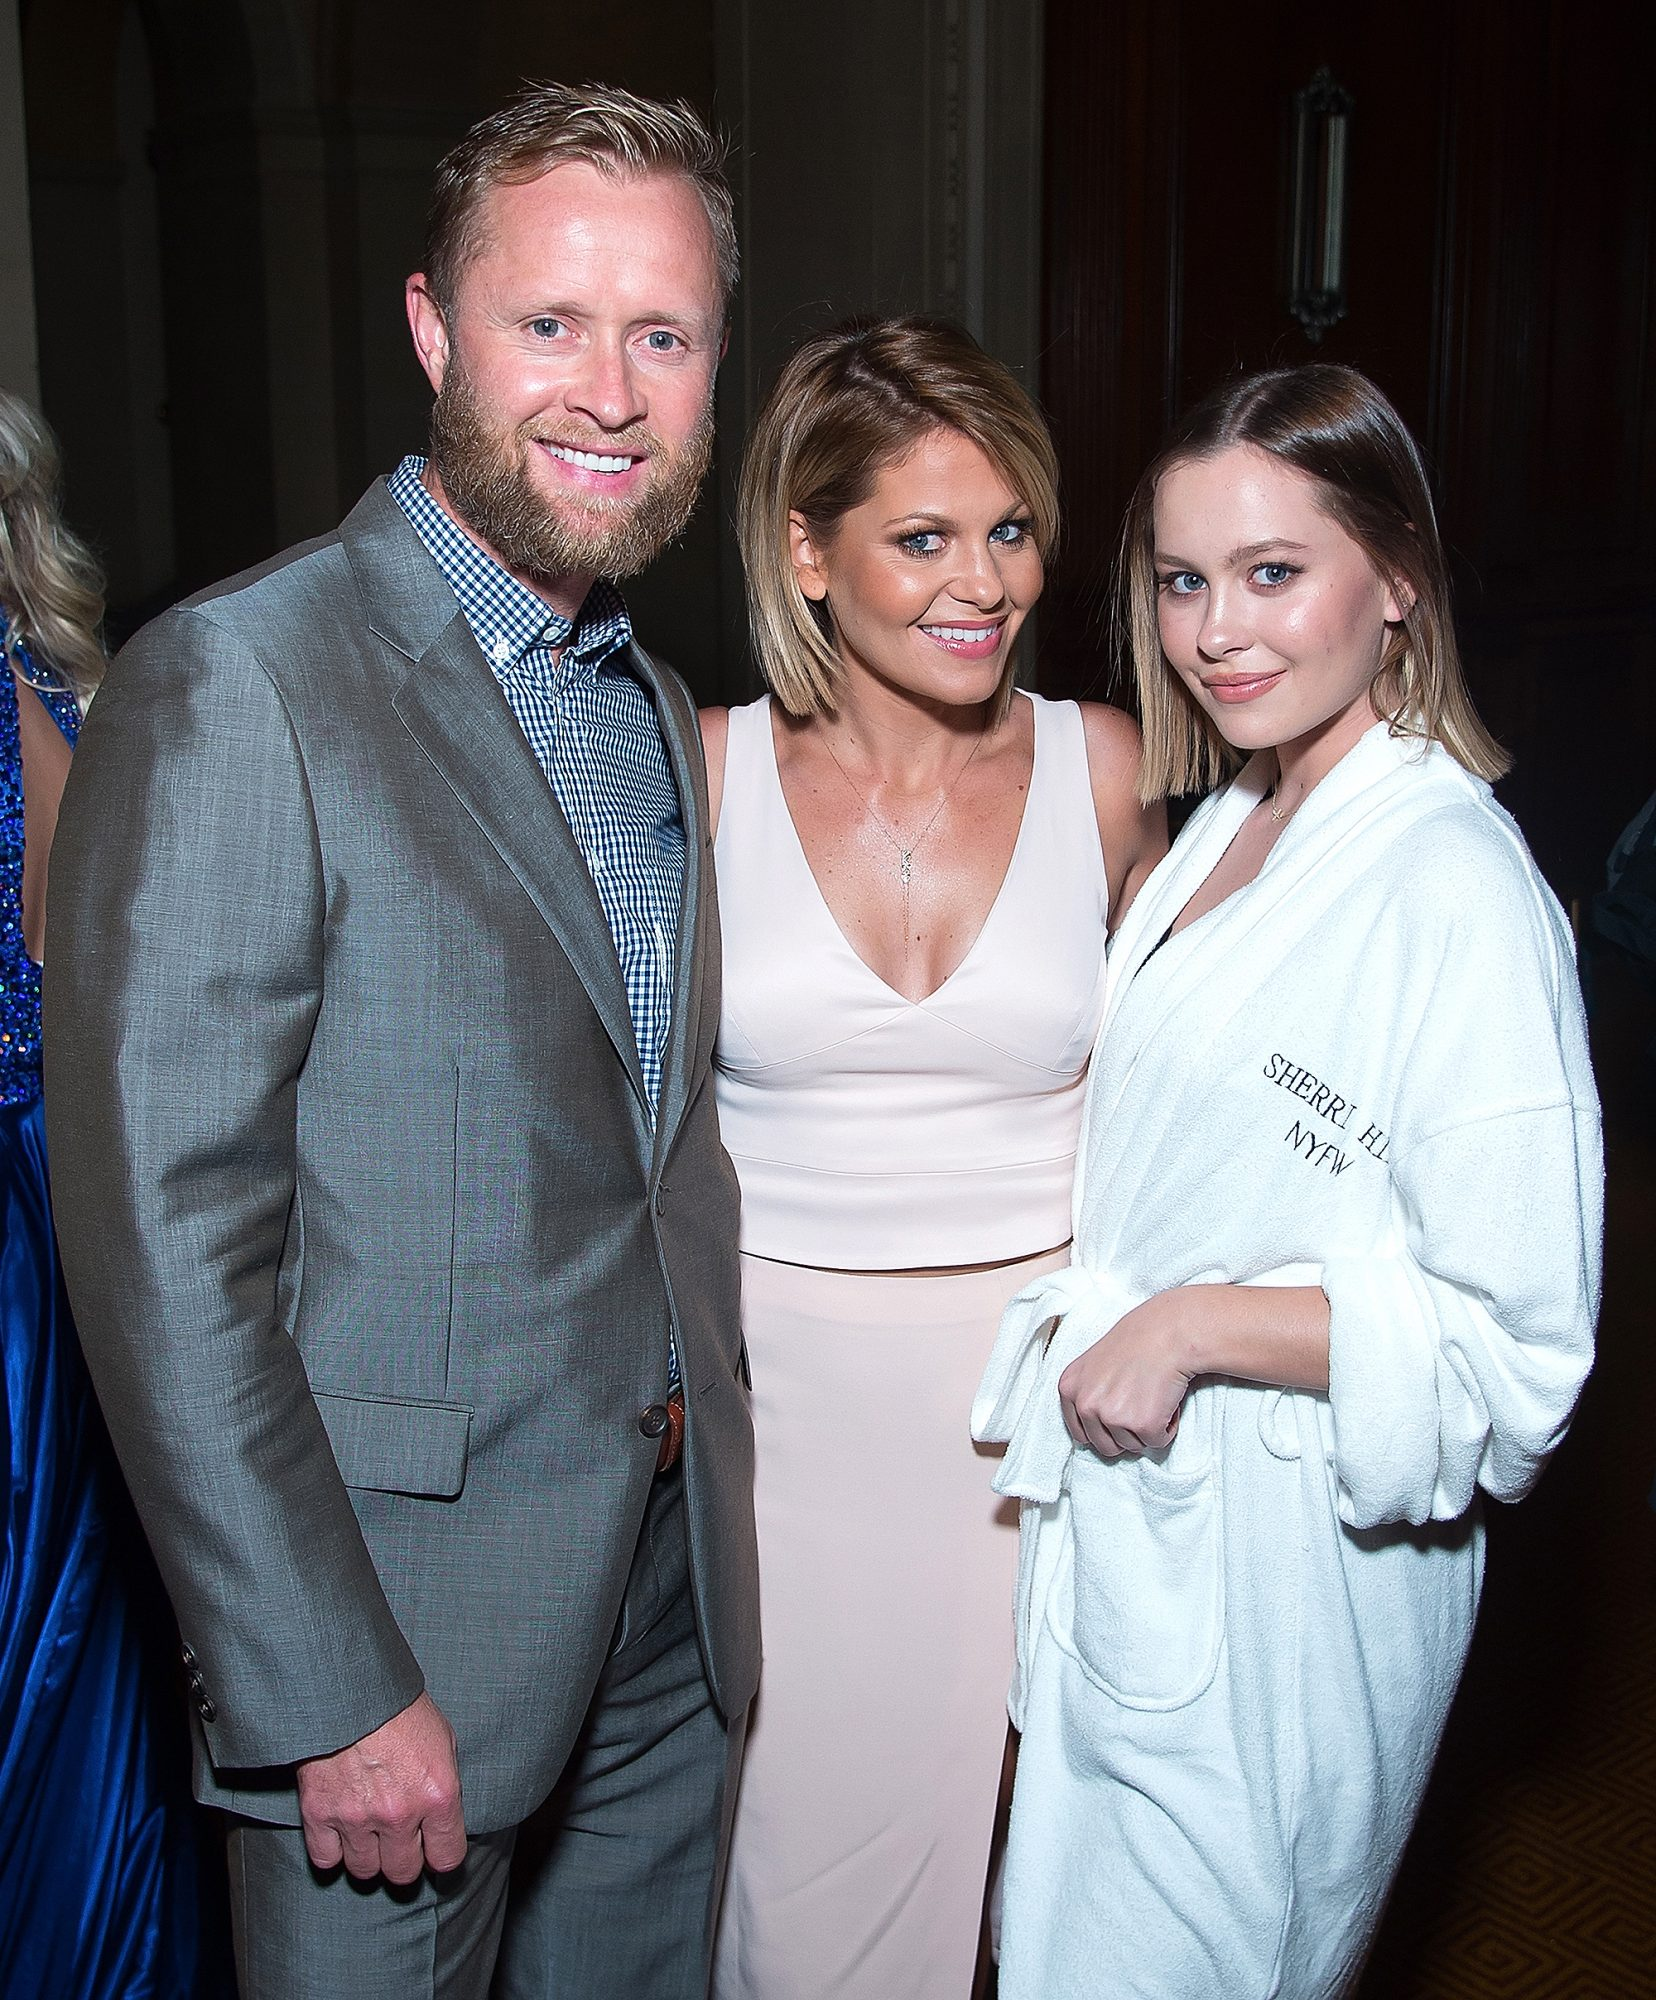 NEW YORK, NY - SEPTEMBER 12: (L-R) Valeri Bure, actress Candace Cameron Bure and Natasha Bure attend the Sherri Hill fashion show during September 2016 New York Fashion Week: The Shows at Gotham Hall on September 12, 2016 in New York City. (Photo by Michael Stewart/WireImage)